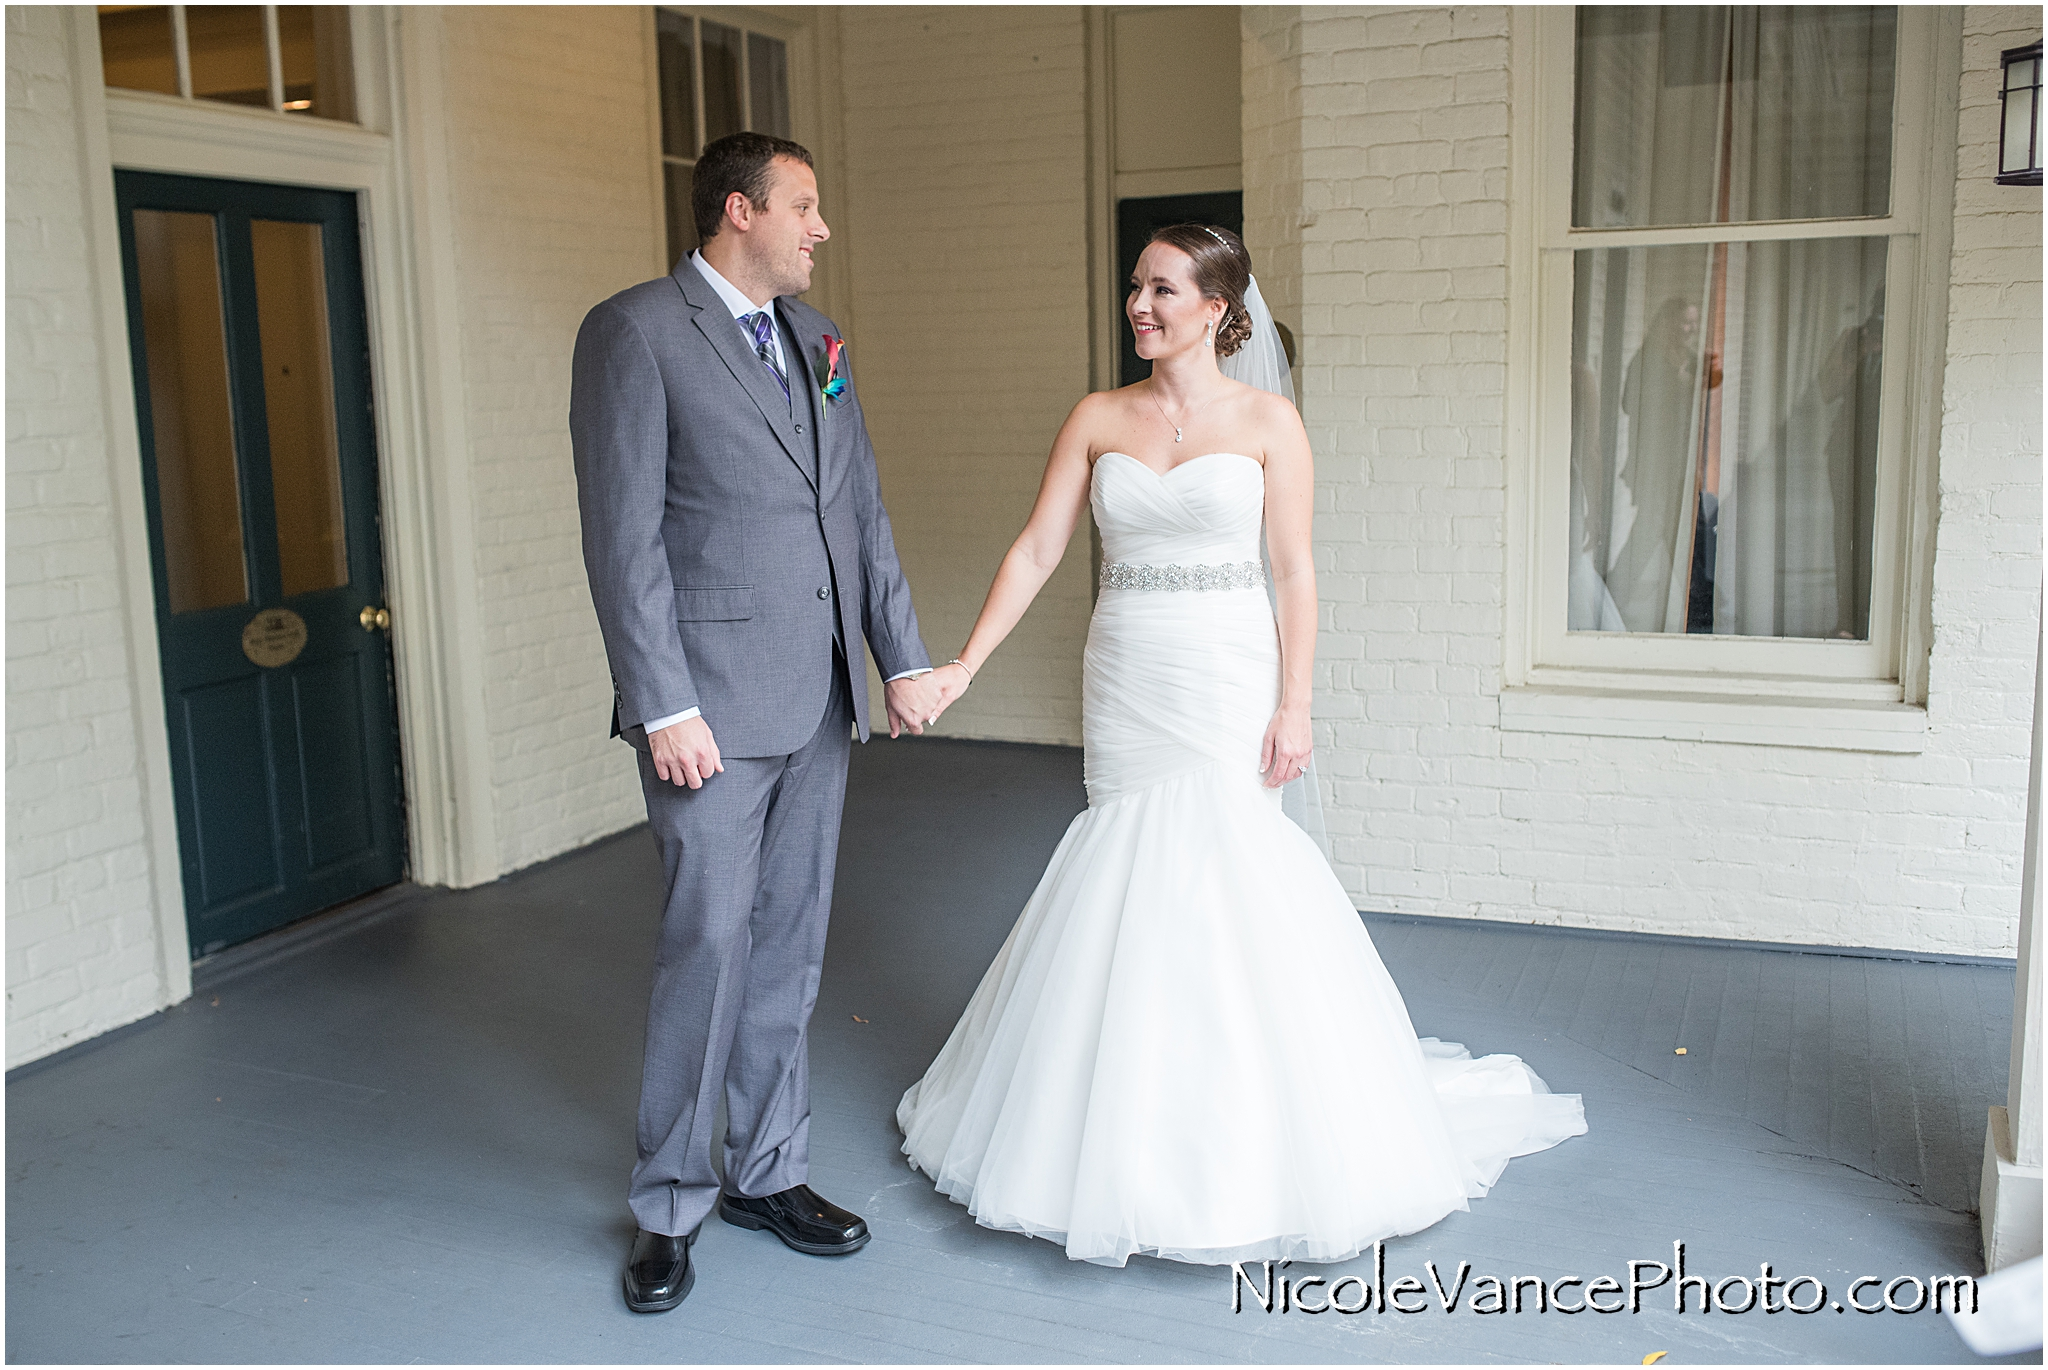 The bride and groom have a private first look on the balcony of the Linden Row Inn.